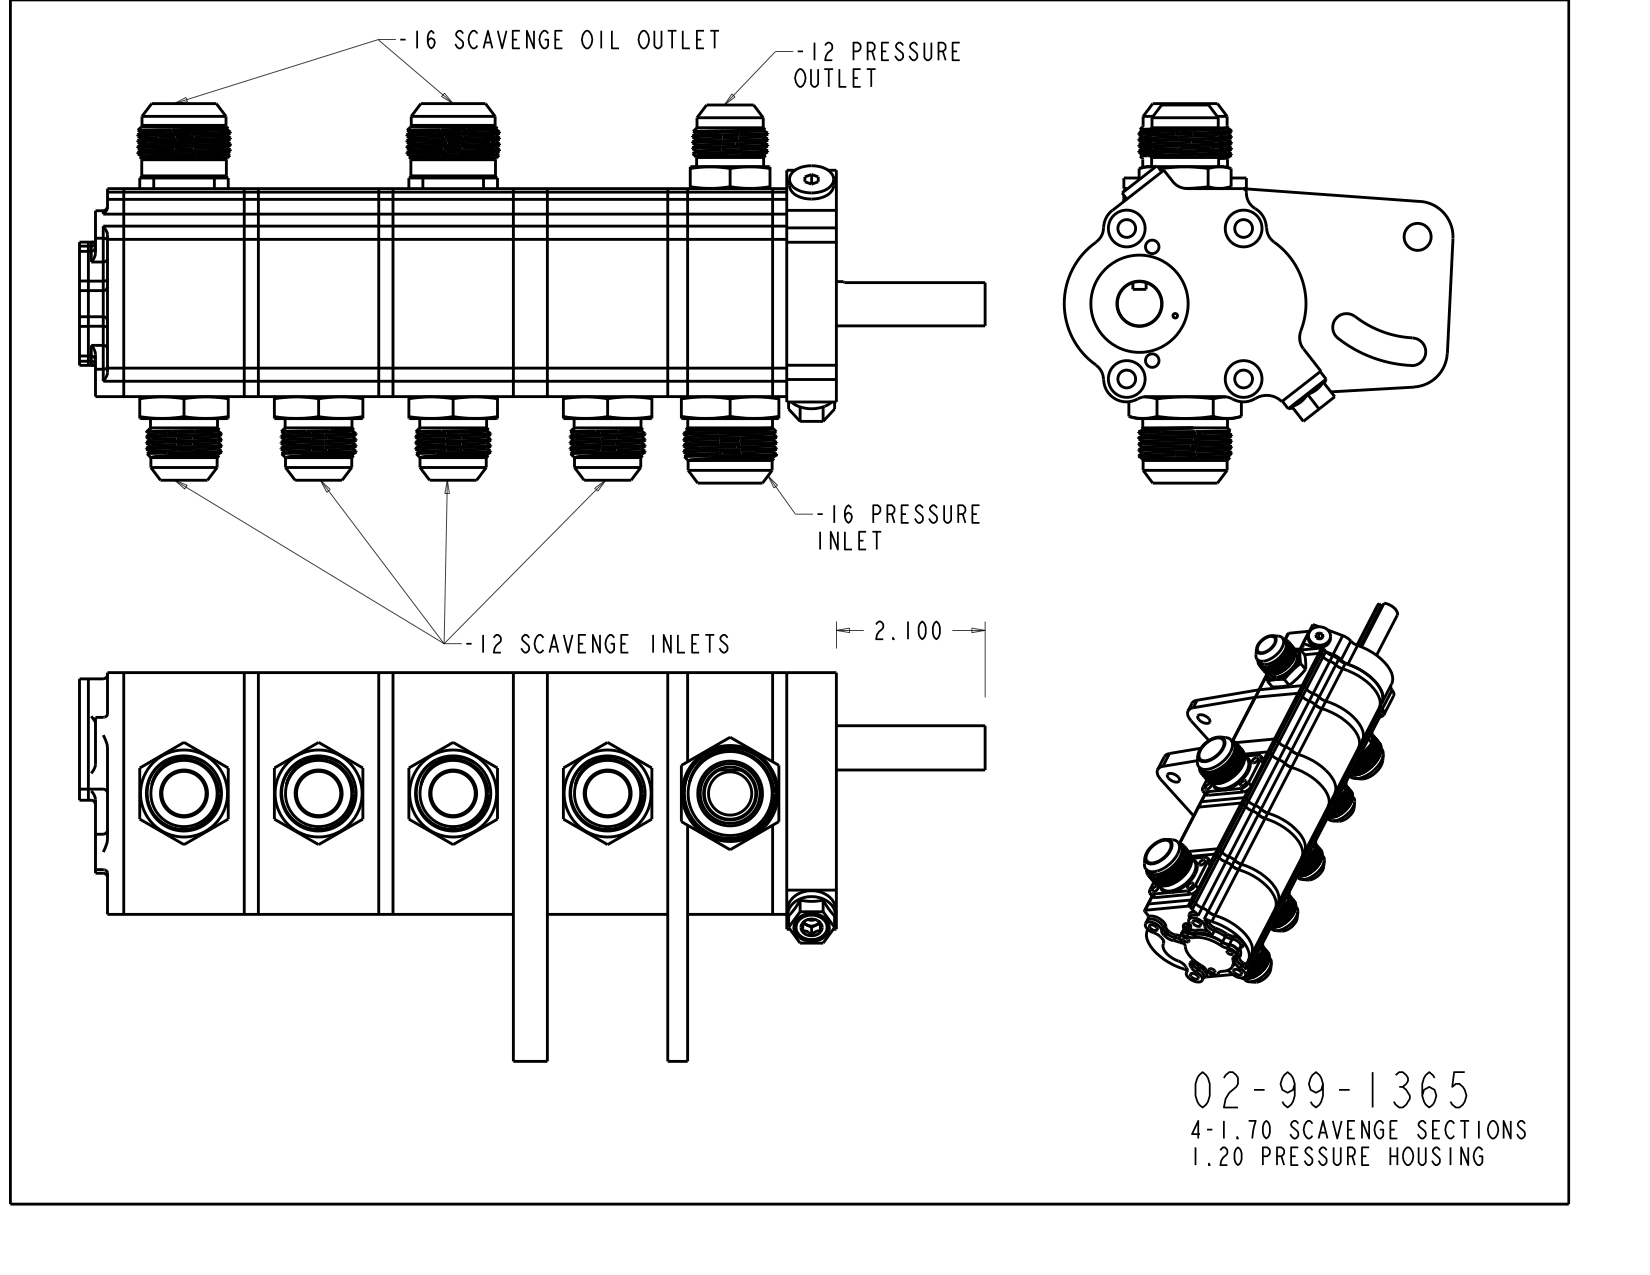 bmw 323ci engine diagram 19 sg dbd de \u202299 bmw 323i fuse box location  imageresizertool